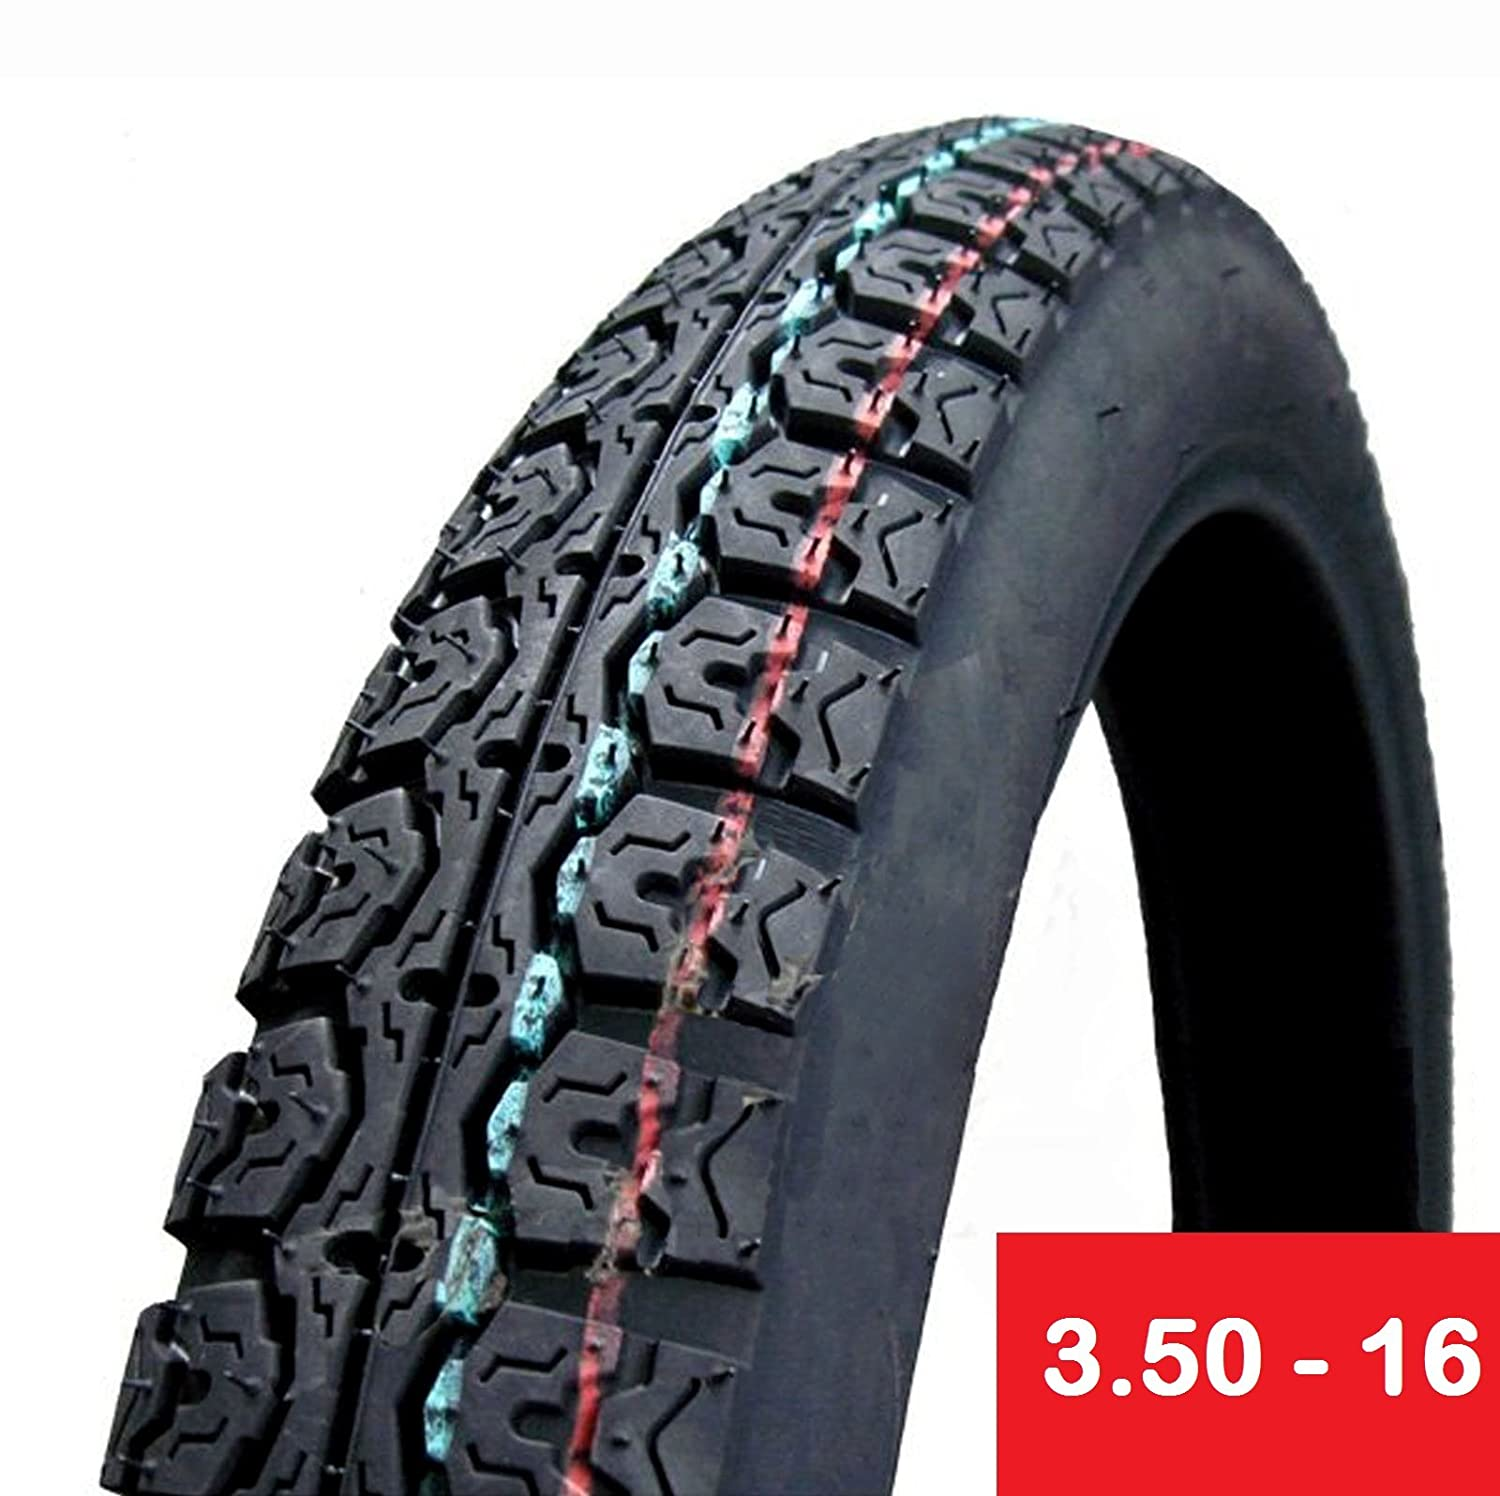 Tire 3.50 - 16 Motorcycle Scooter Moped Street Front/Rear Performance Tire ScooterPartsDepot 4333417840